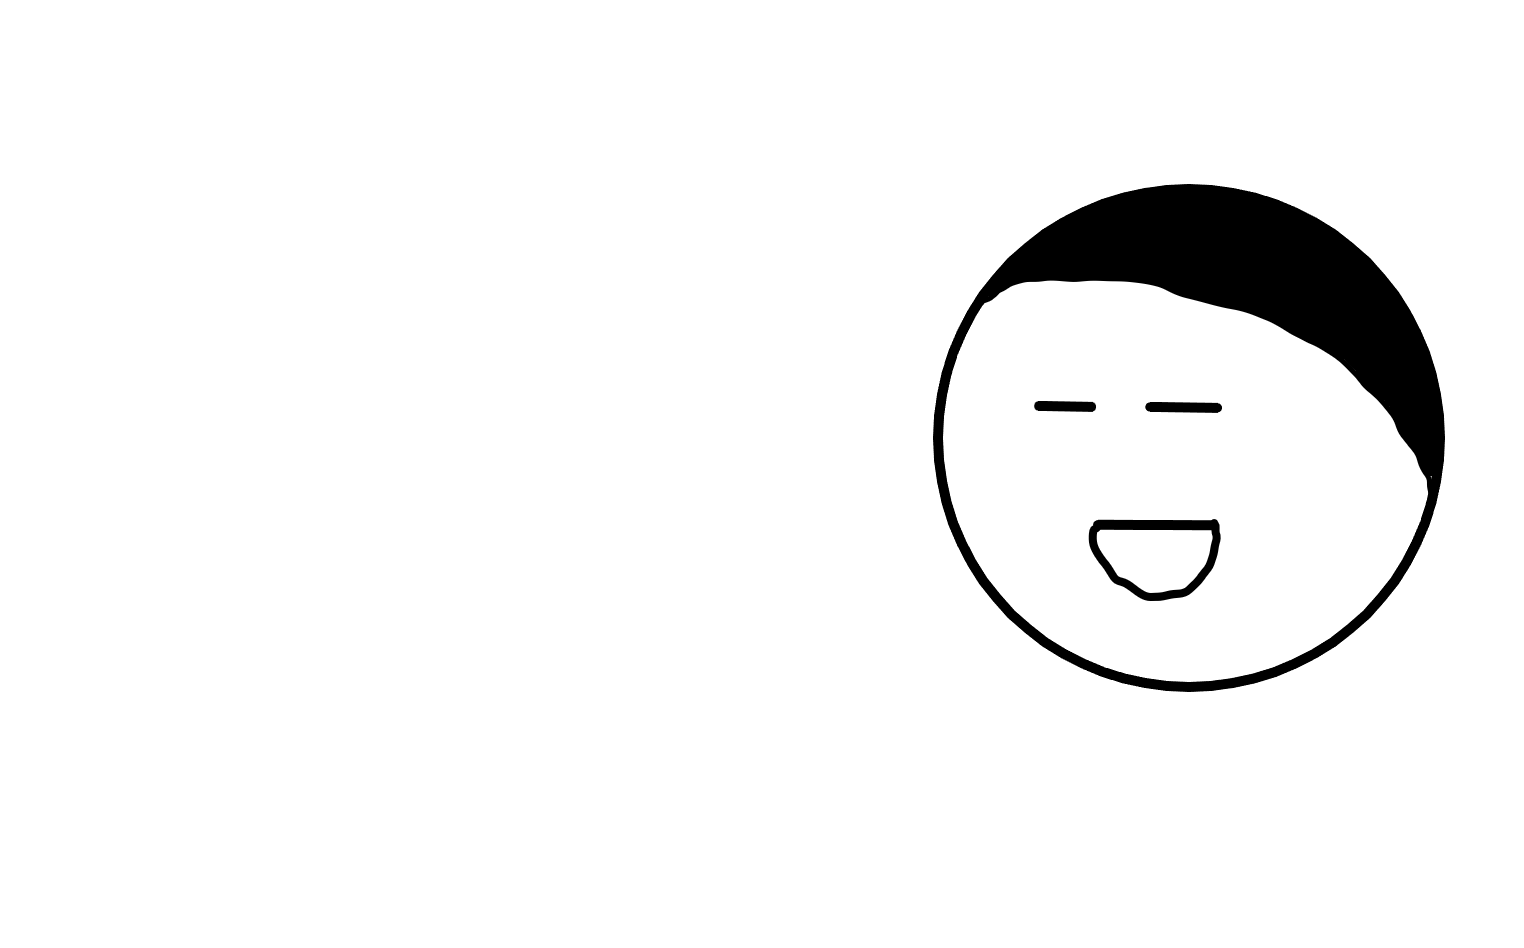 Talking Face - closed eyes and smiling.png